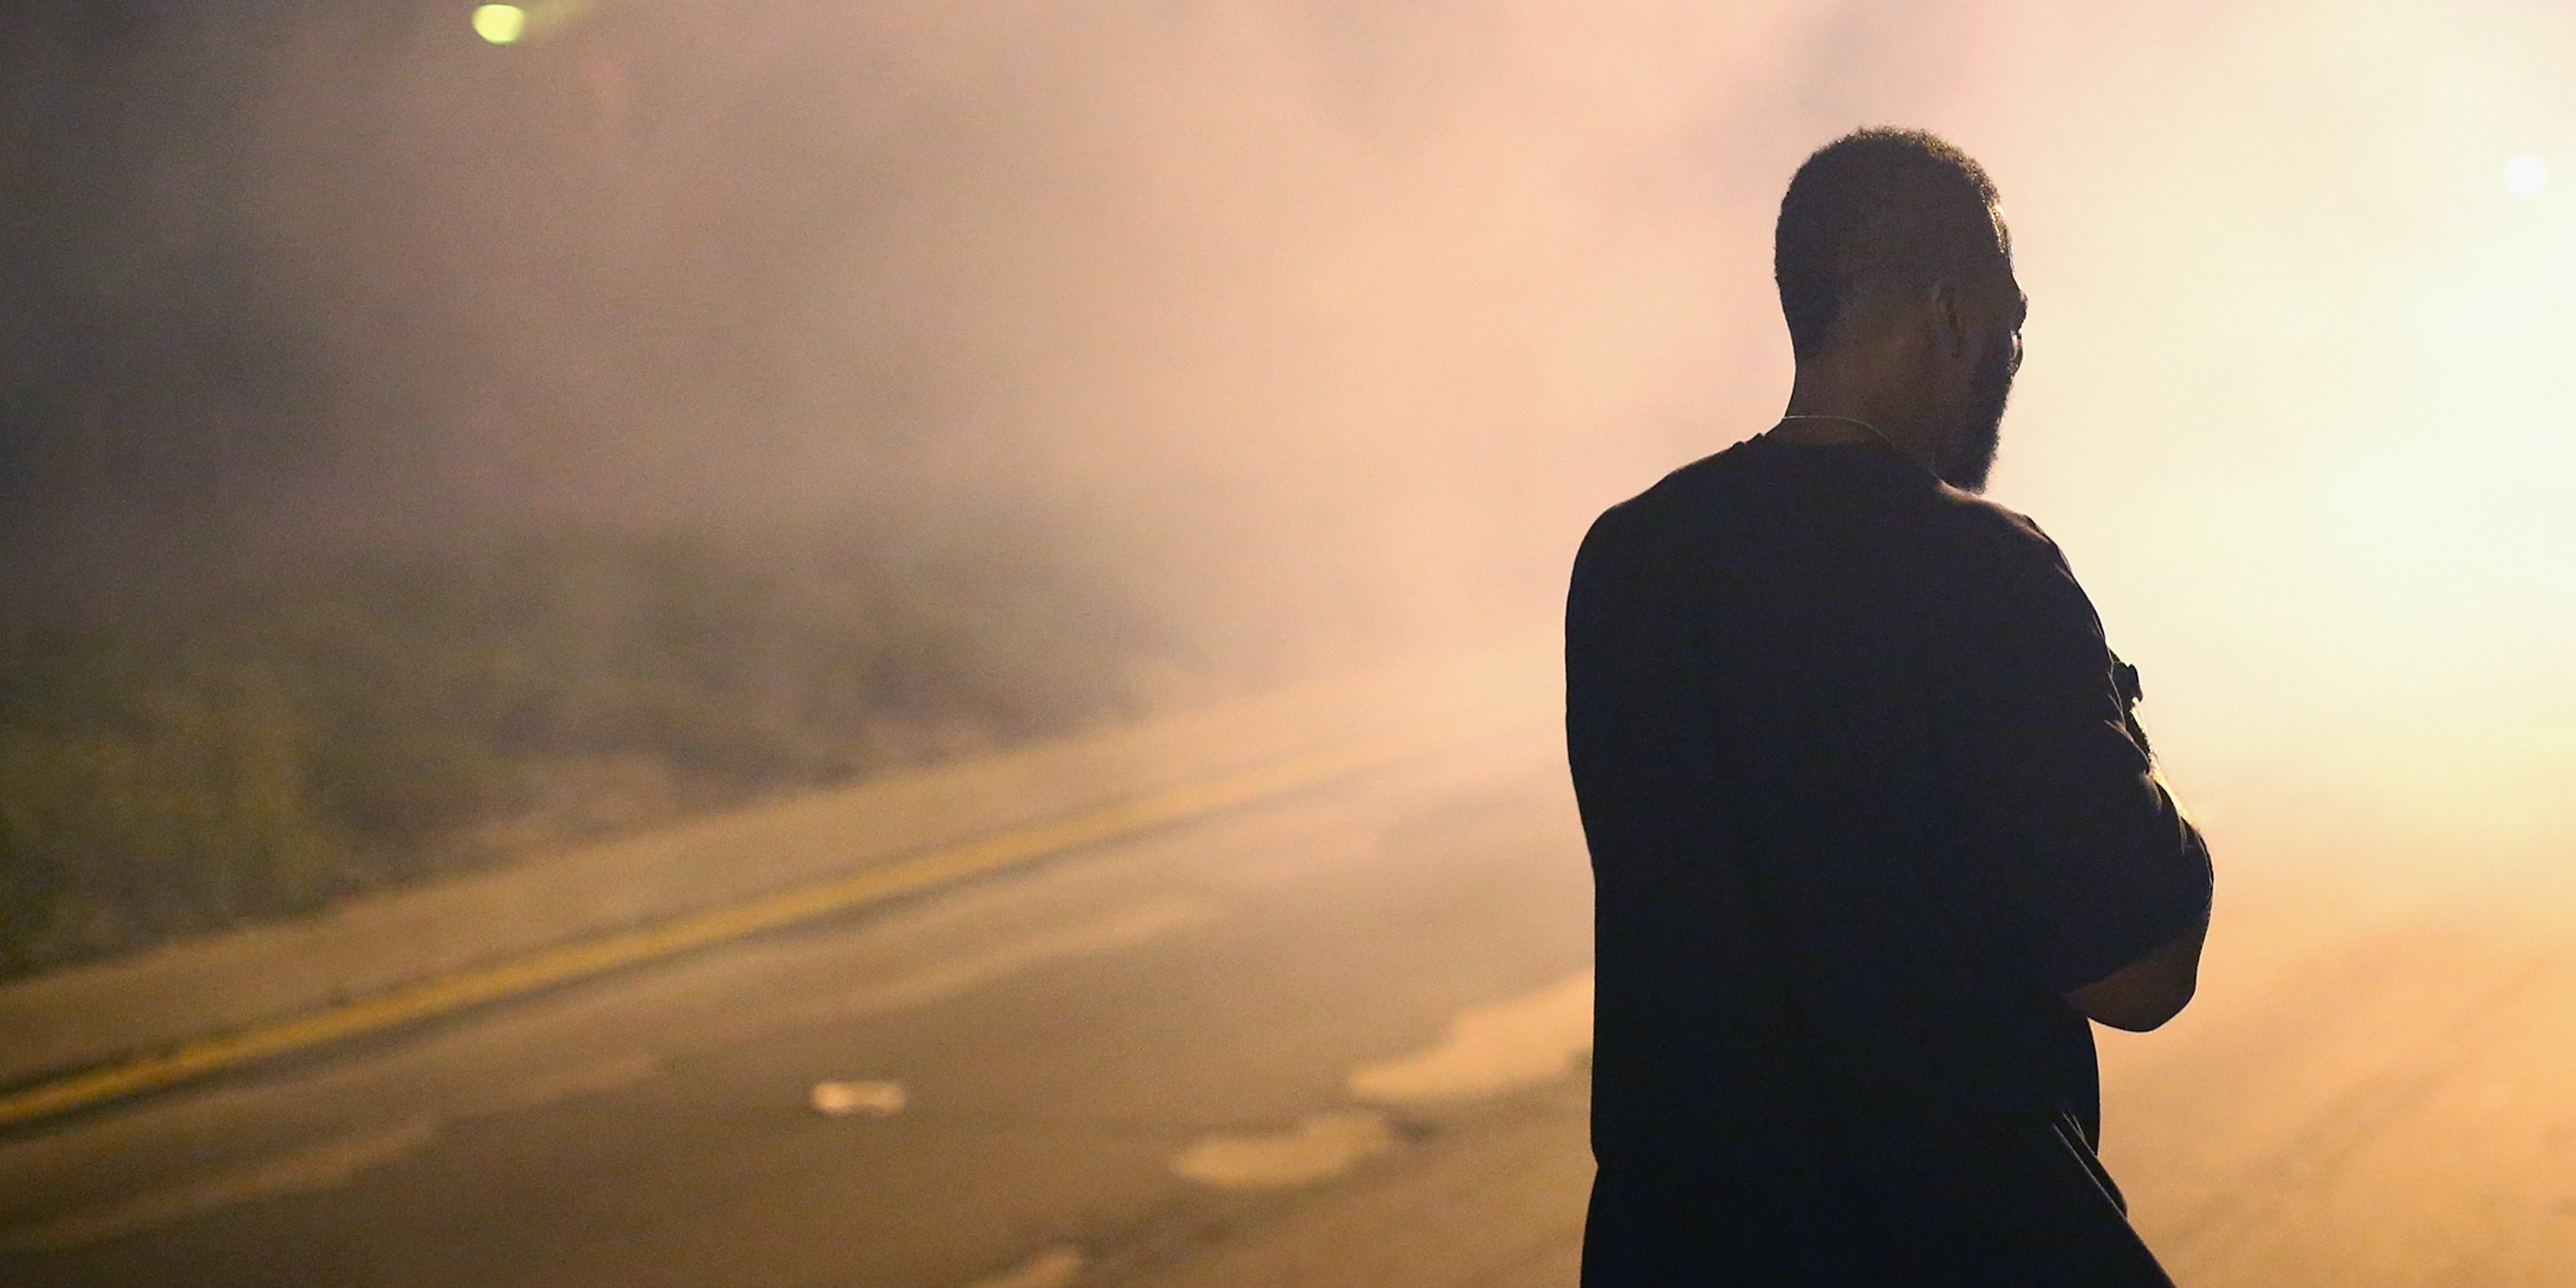 Why Americans See Black Men as a Threat